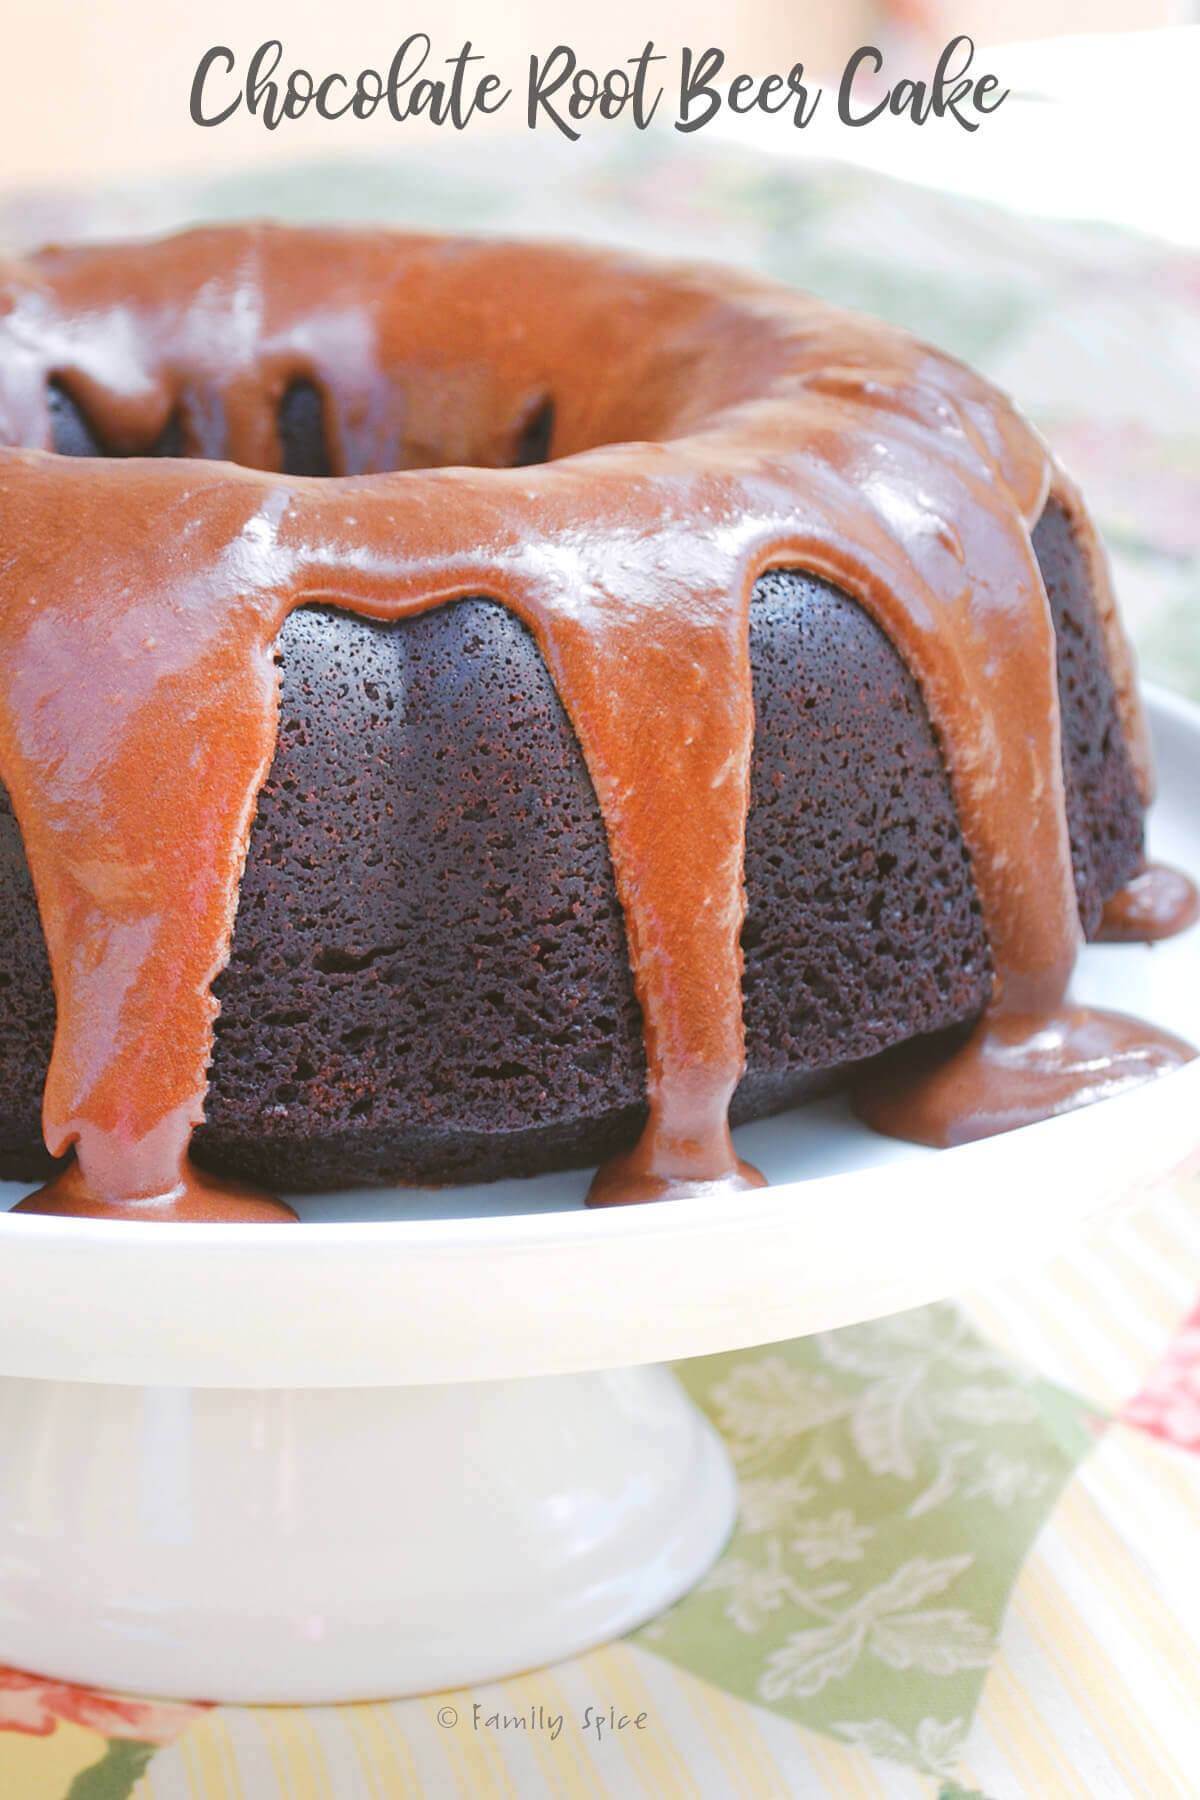 Closeup of a chocolate root beer bundt cake by FamilySpice.com